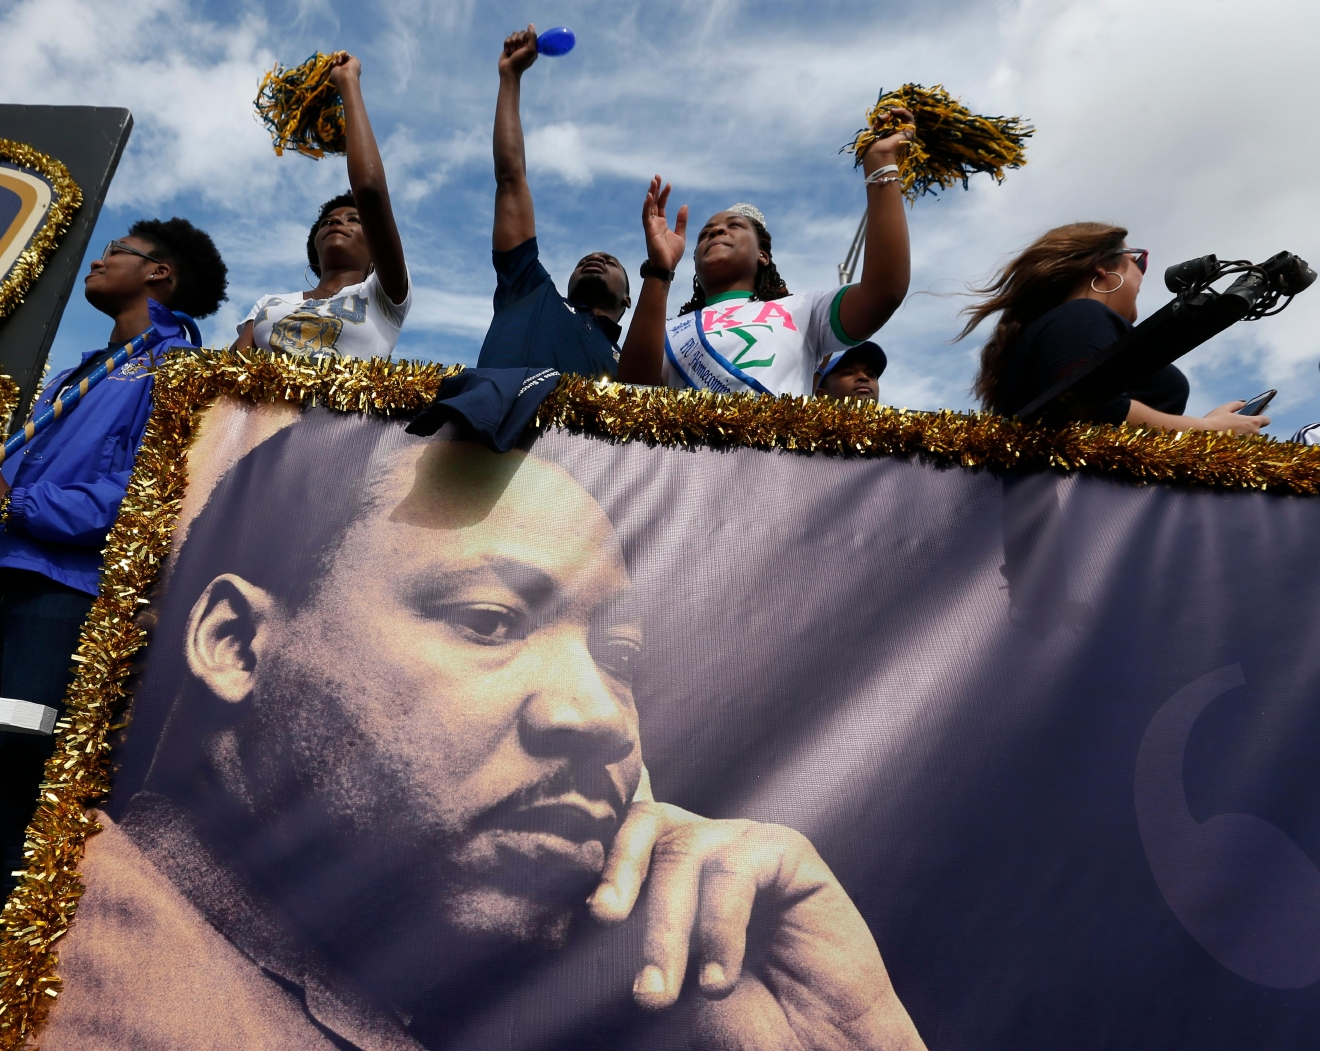 People aboard a float from Florida International University wave to crowds during a parade honoring the Rev. Martin Luther King Jr., Monday, Jan. 16, 2017, in the Liberty City neighborhood of Miami. (AP Photo/Wilfredo Lee)